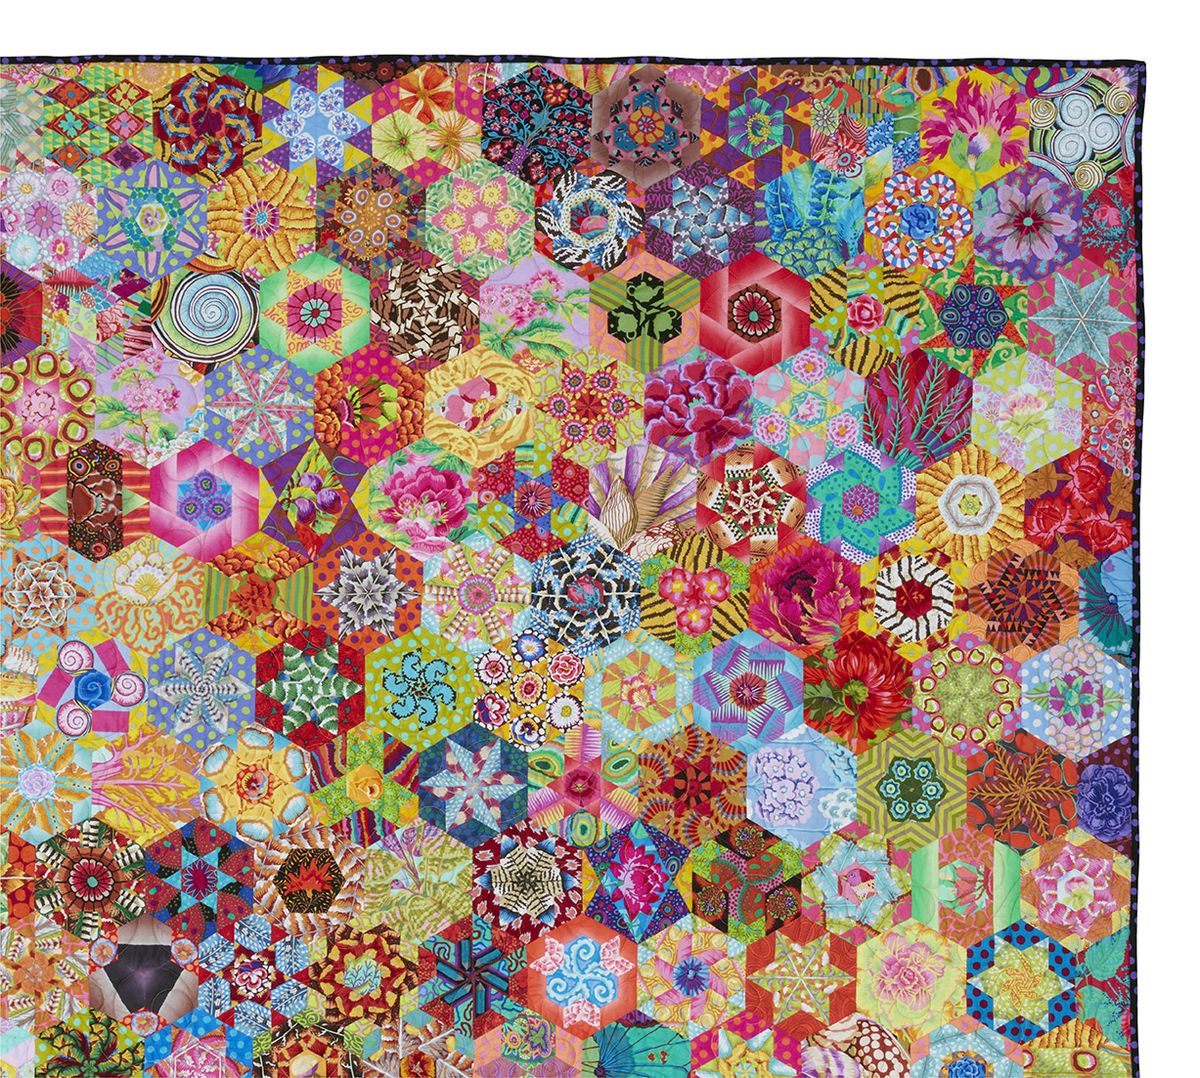 Quilting Templates Hexagon : 1000+ images about Quilty: Hexagon on Pinterest Hexagon Quilt, Hexagons and English Paper Piecing